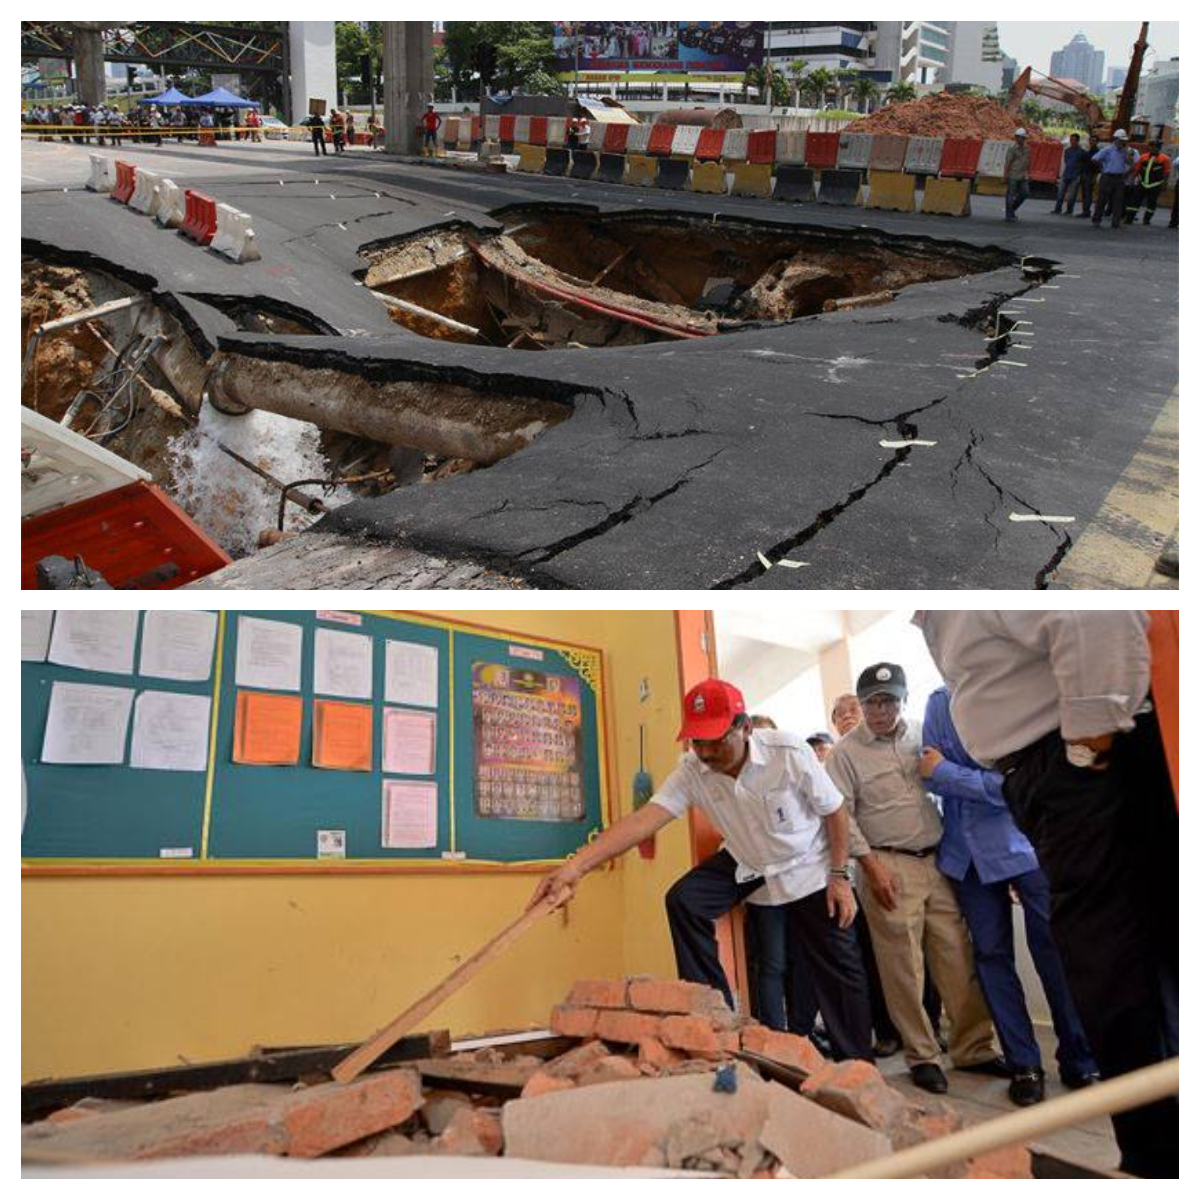 Sinkhole at Bukit Bintang (top) and building damage due to Sabah quake (below). Images from MalayMail and The Borneo Post